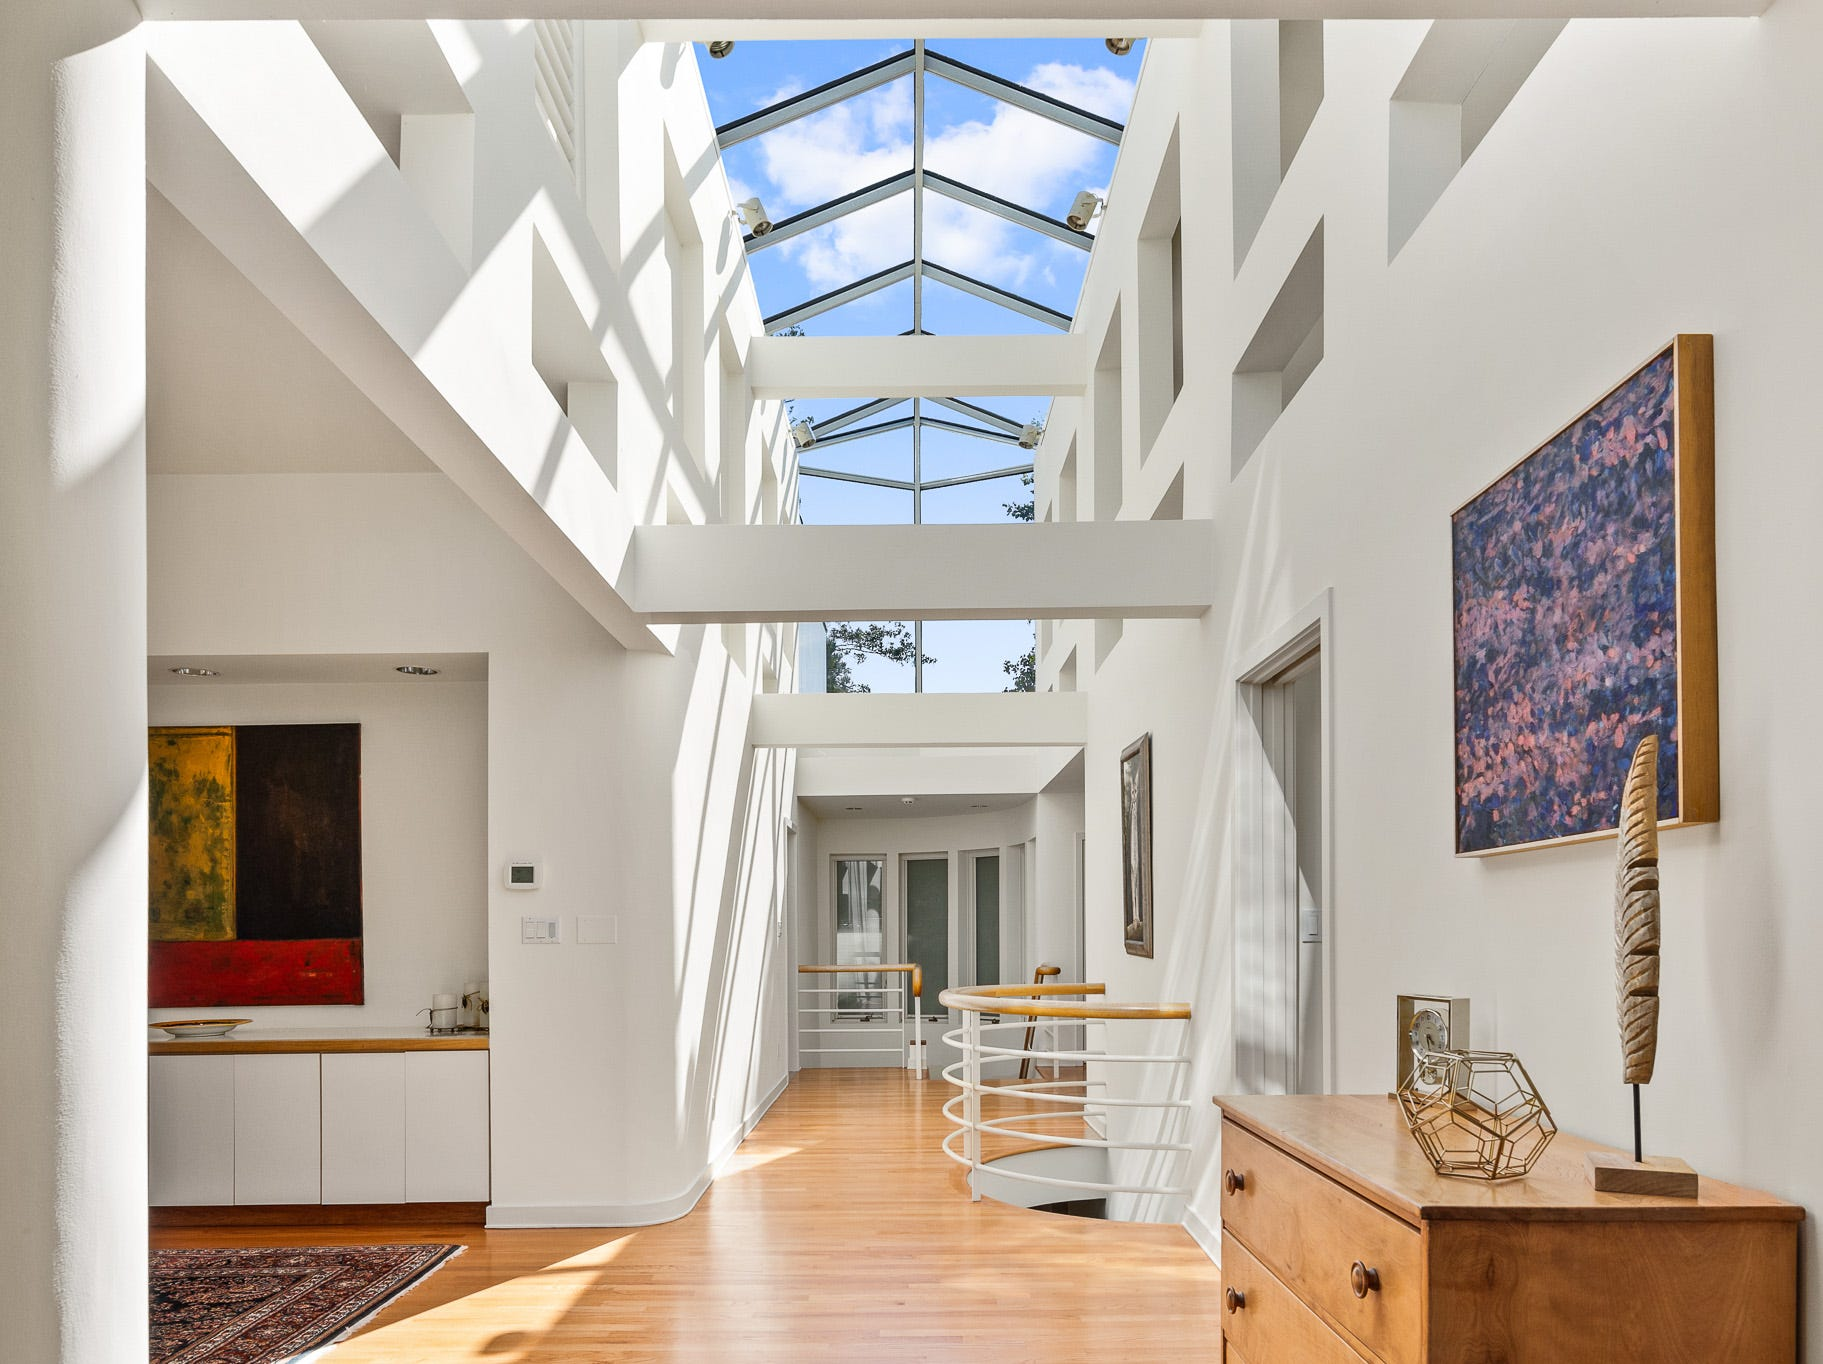 The house at 3611 Centerville Road in Greenville features beams and an exposed glass ceiling.